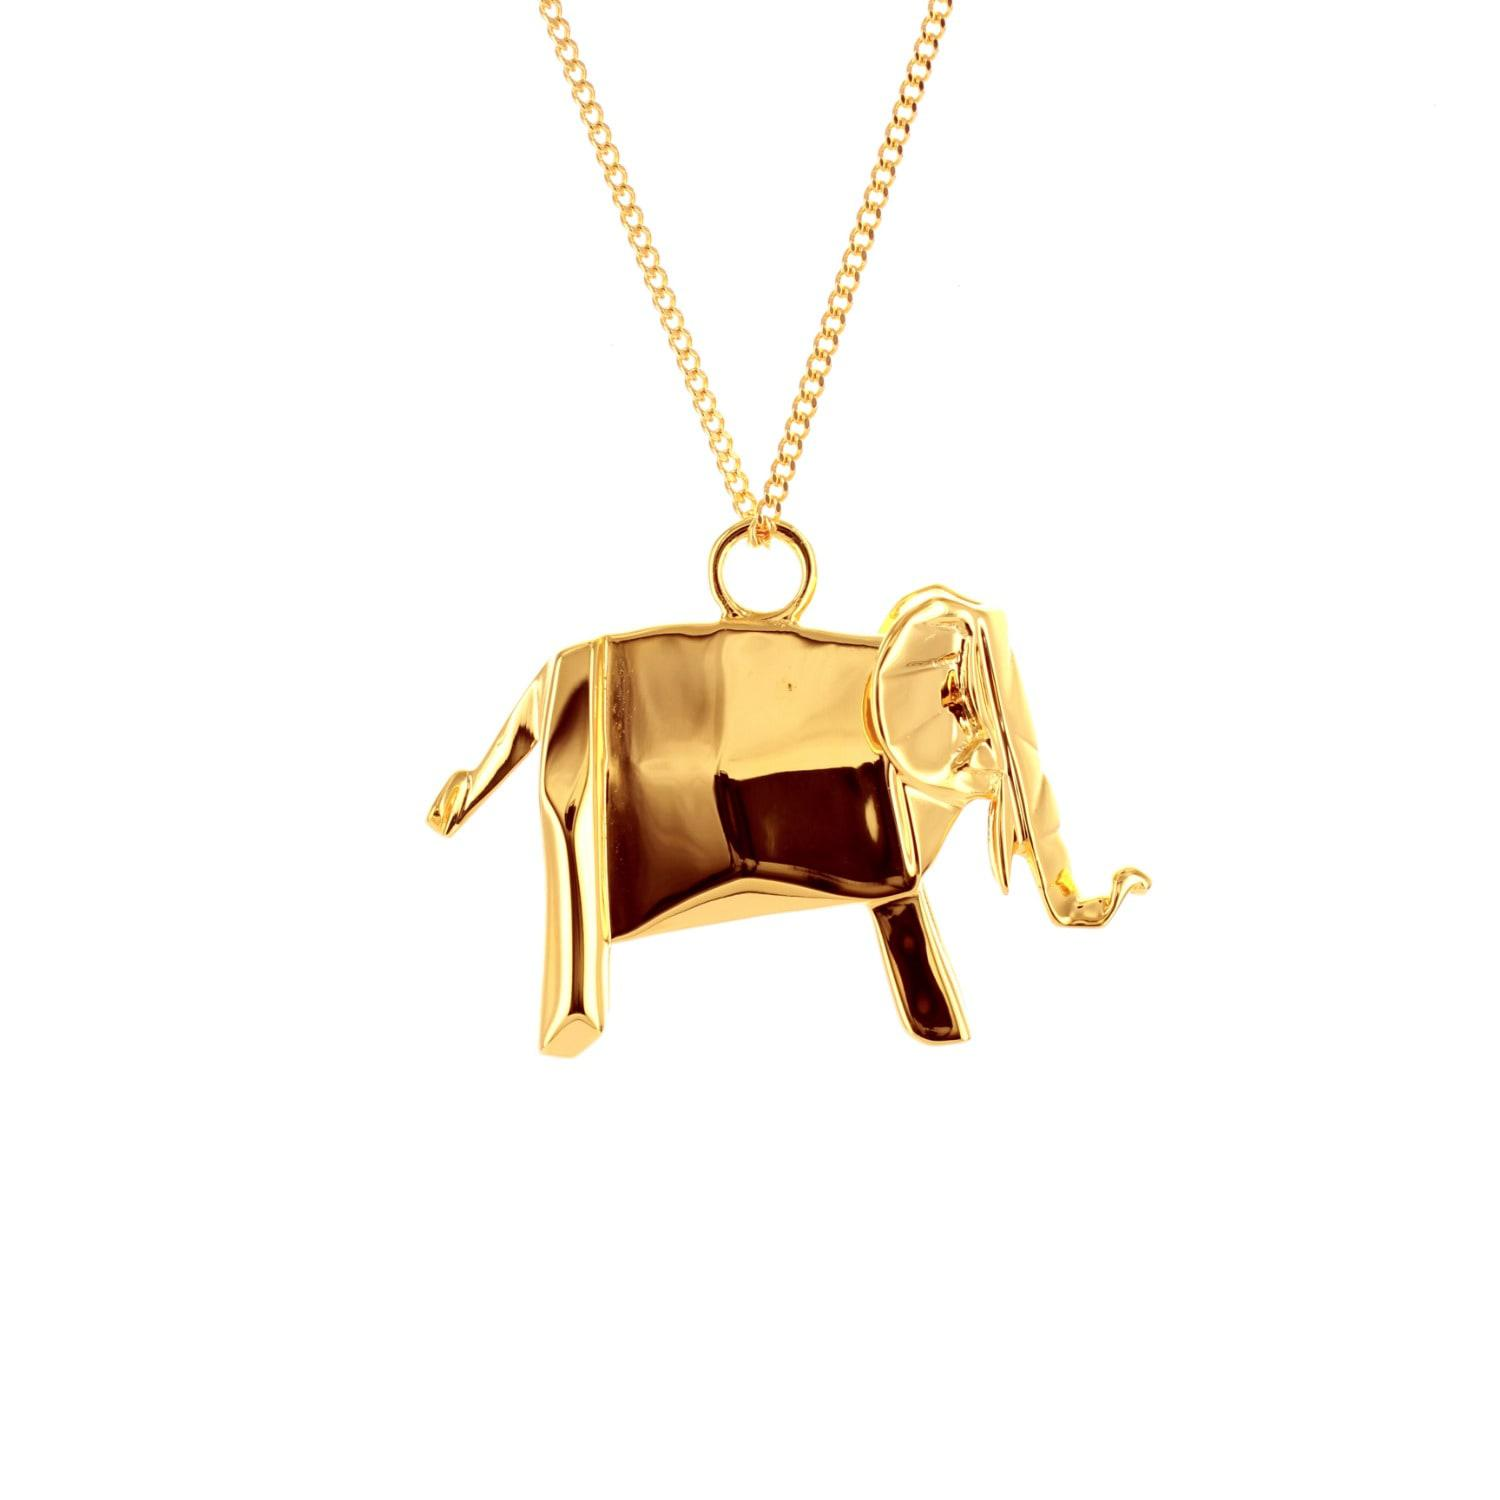 Origami jewellery elephant necklace gold in metallic save 22 lyst elephant necklace gold lyst view fullscreen aloadofball Images